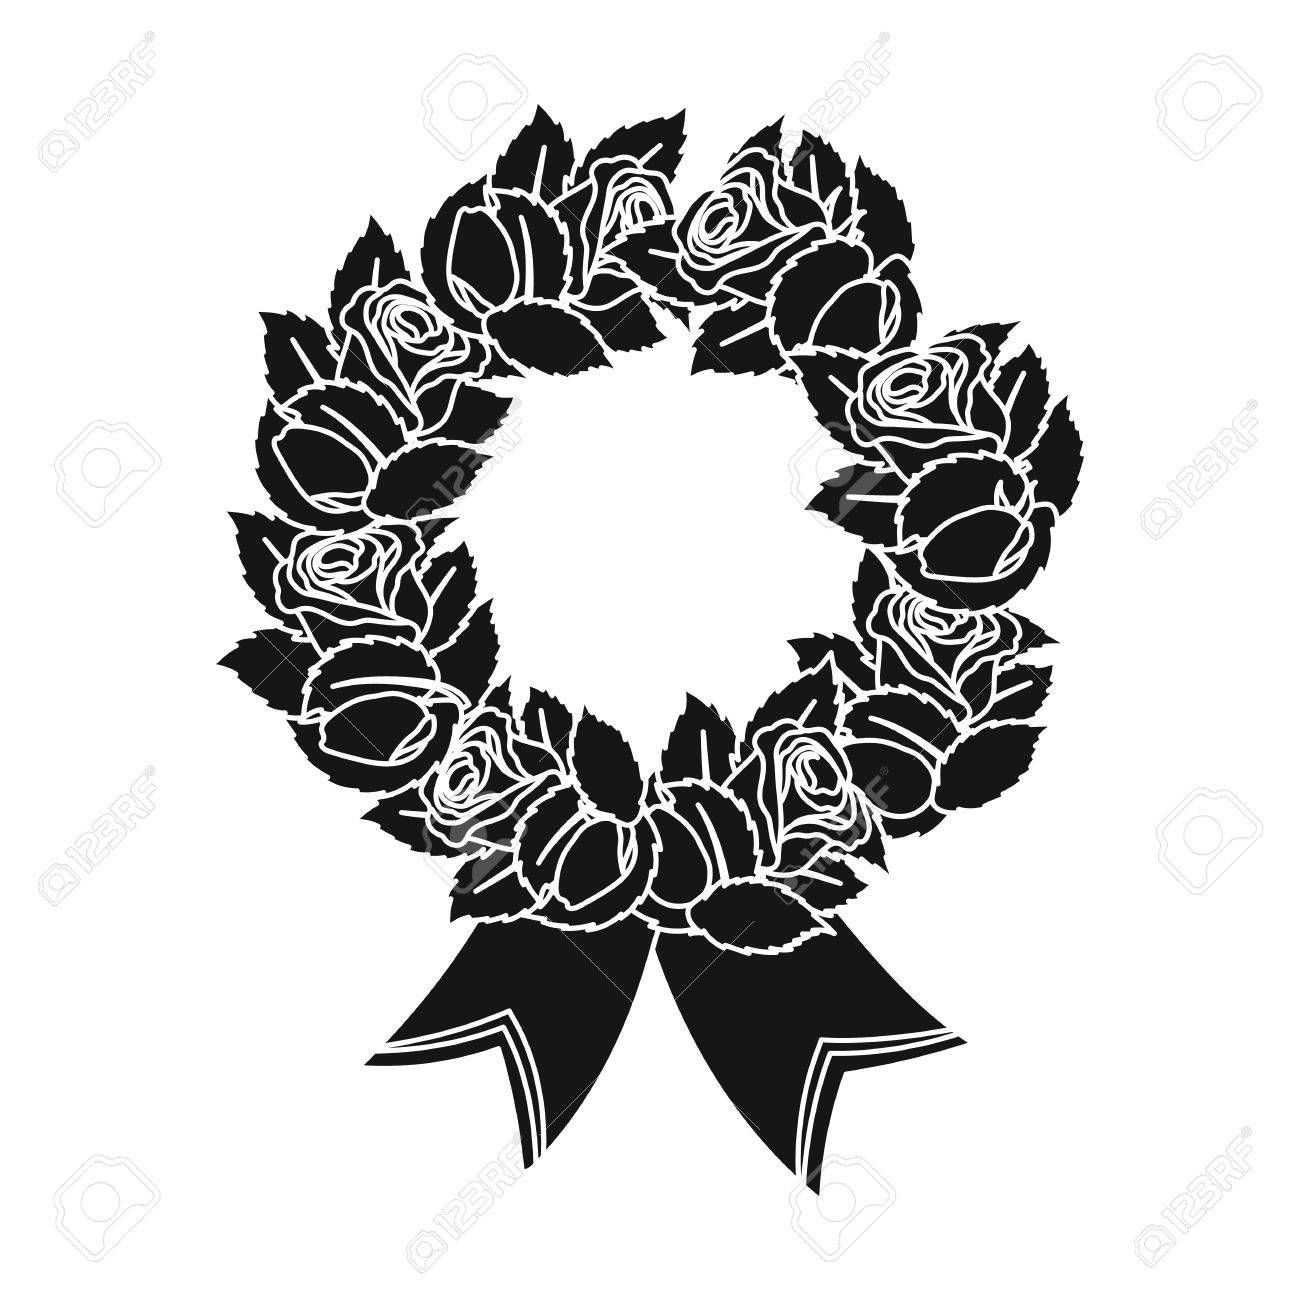 Funeral wreath icon in black style isolated on white